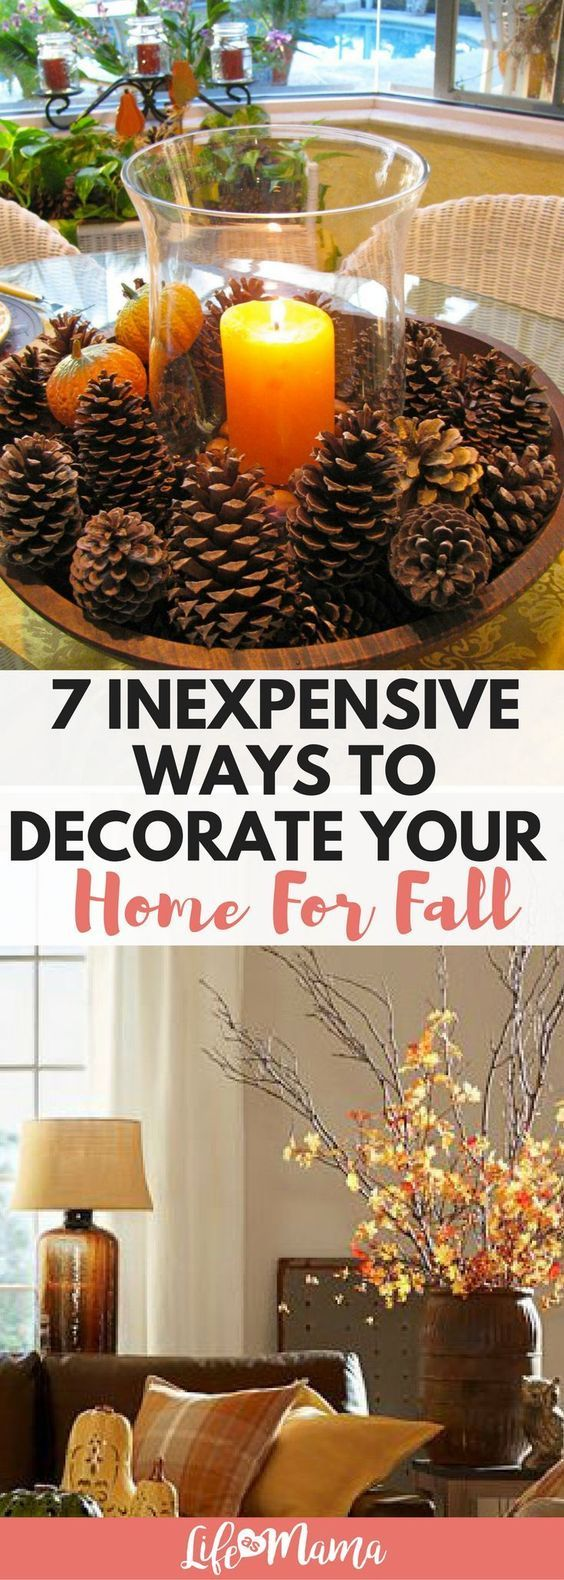 Photo of 10 Inexpensive Ways To Decorate Your Home For Fall